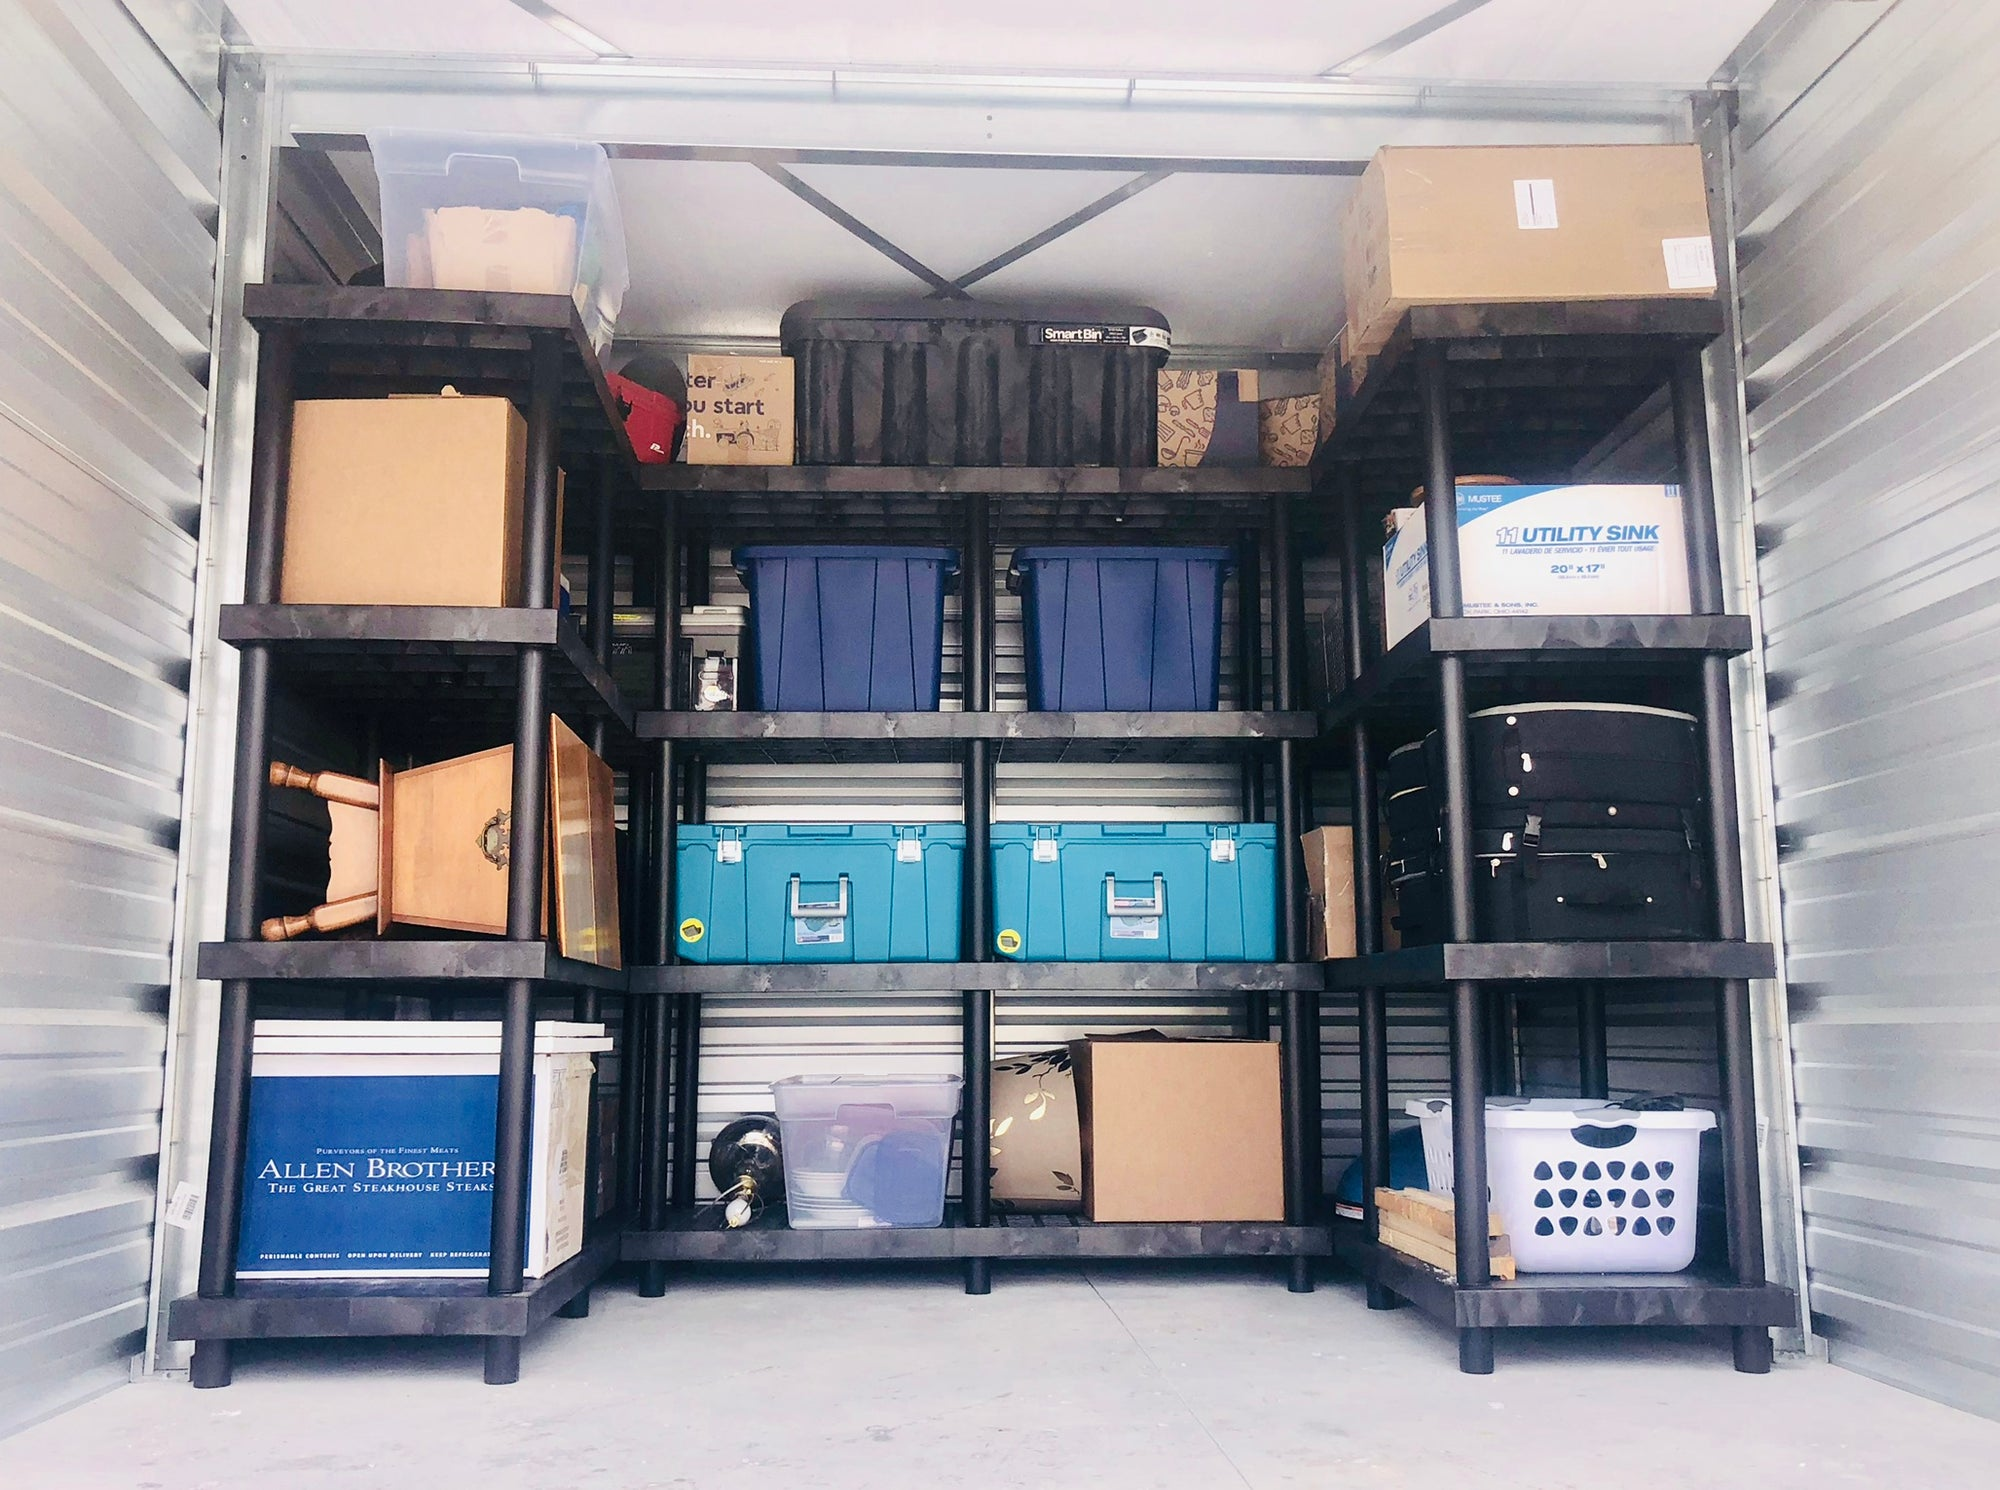 Self-Storage Units: Maximize Space, Organize, Protect & Lift Your  Possessions Off The Ground With Heavy-Duty Plastic Shelving